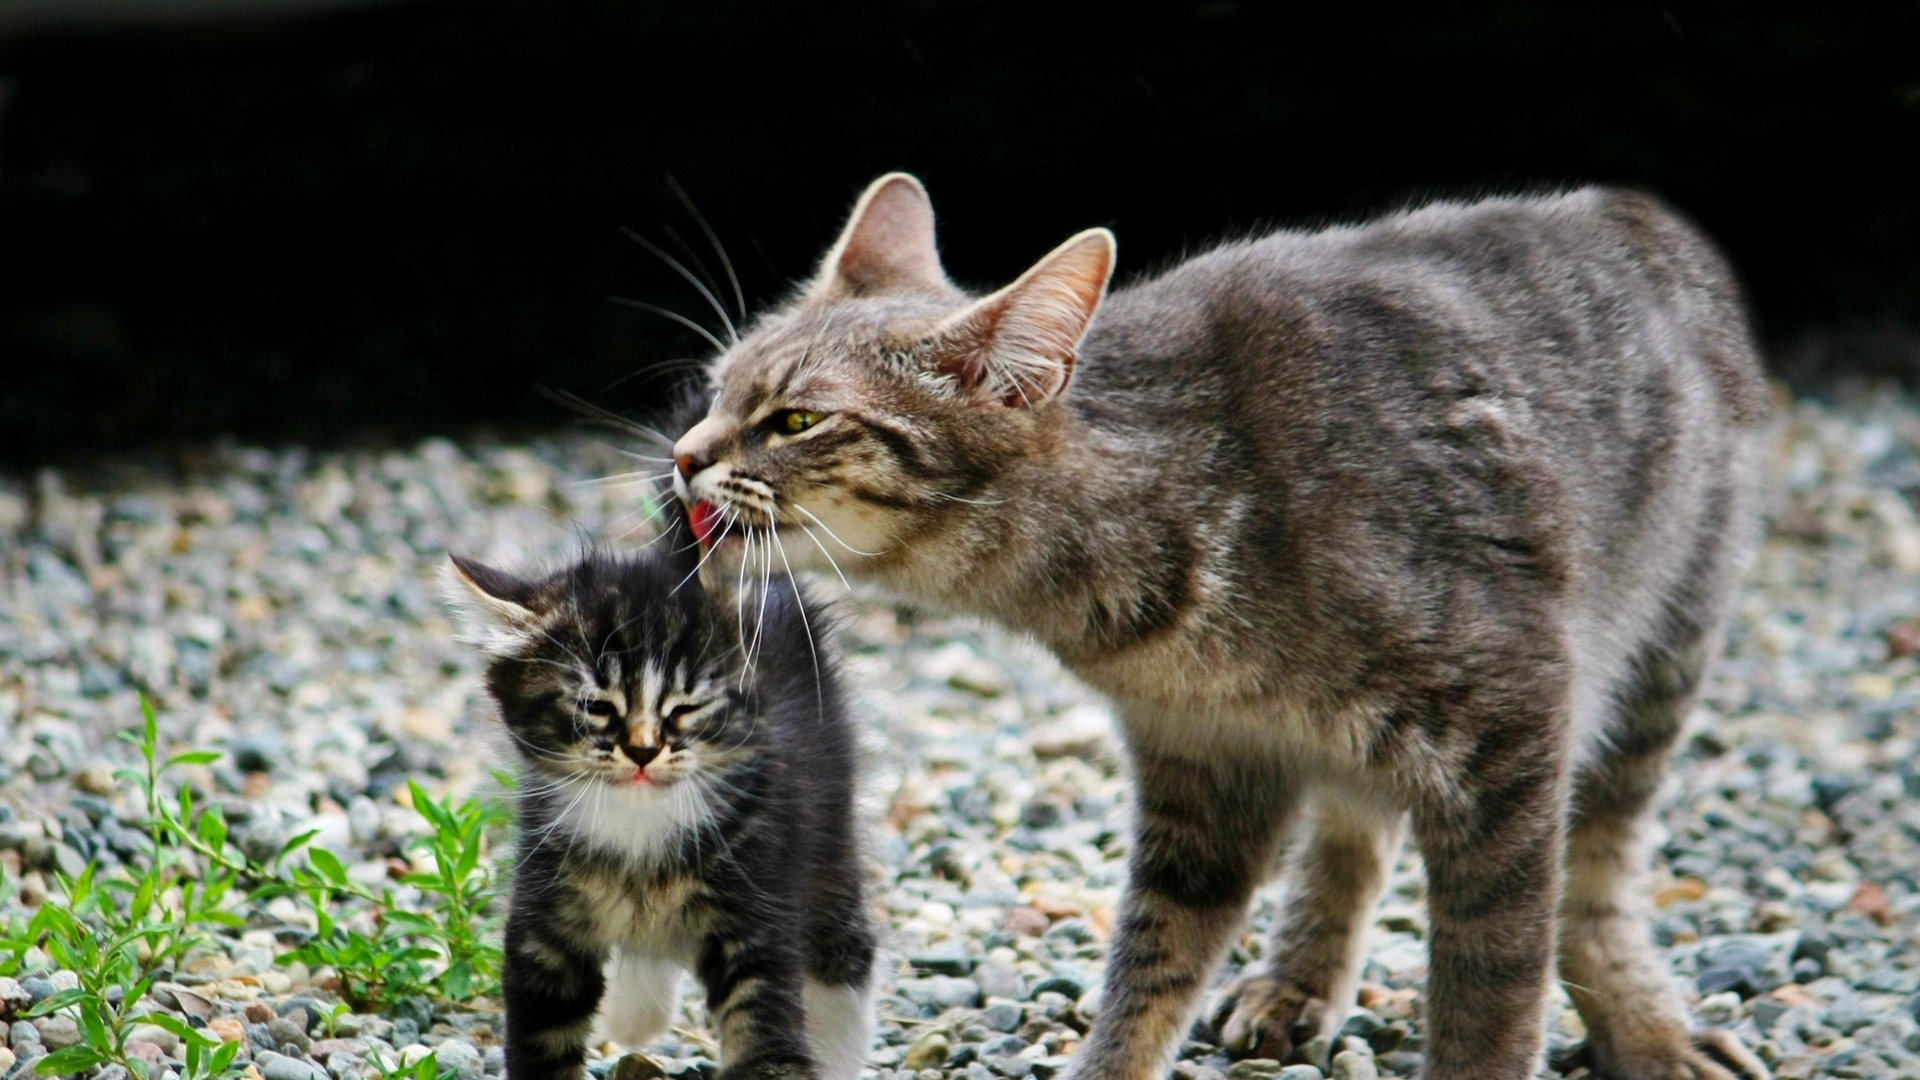 cute cat photos hd for mobile 4